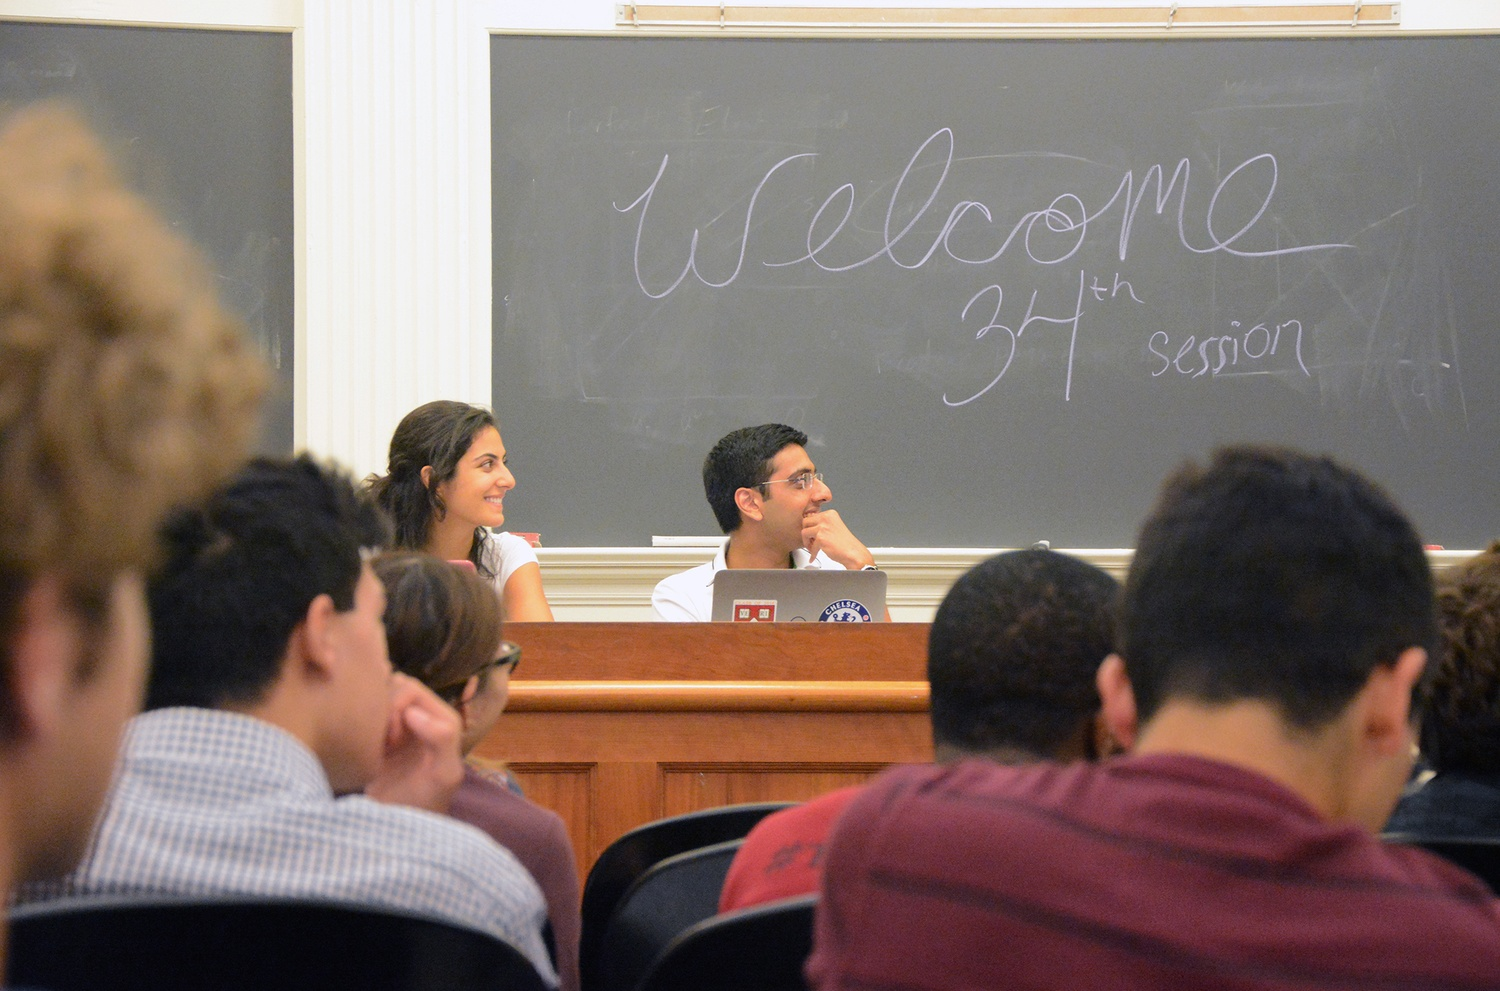 Harvard Undergraduate Council President Ava Nasrollahzadeh '16 and Vice President Dhruv P. Goyal '16 pictured at the inaugural UC meeting in September.